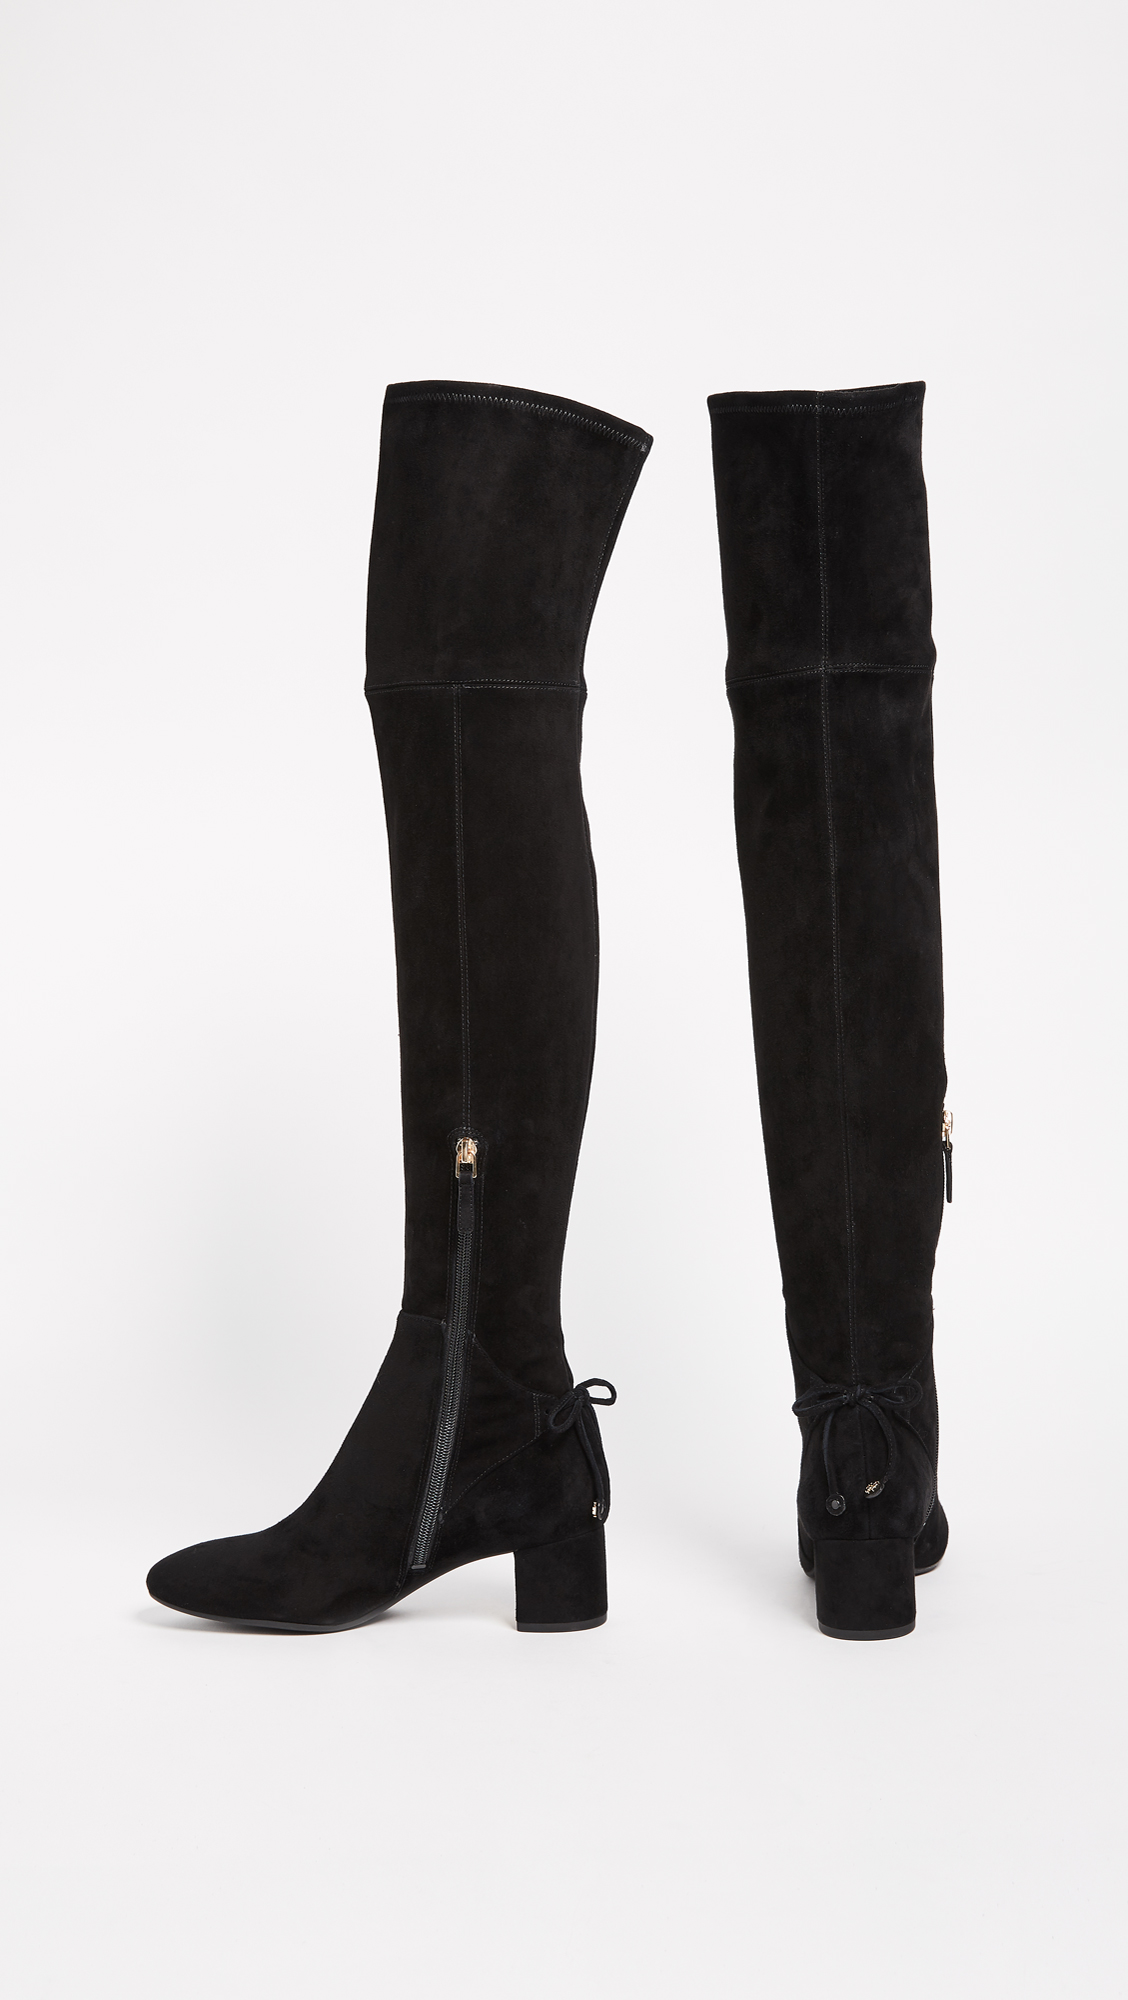 991a282ce253 Tory Burch Laila 45Mm Over-the-Knee Boots